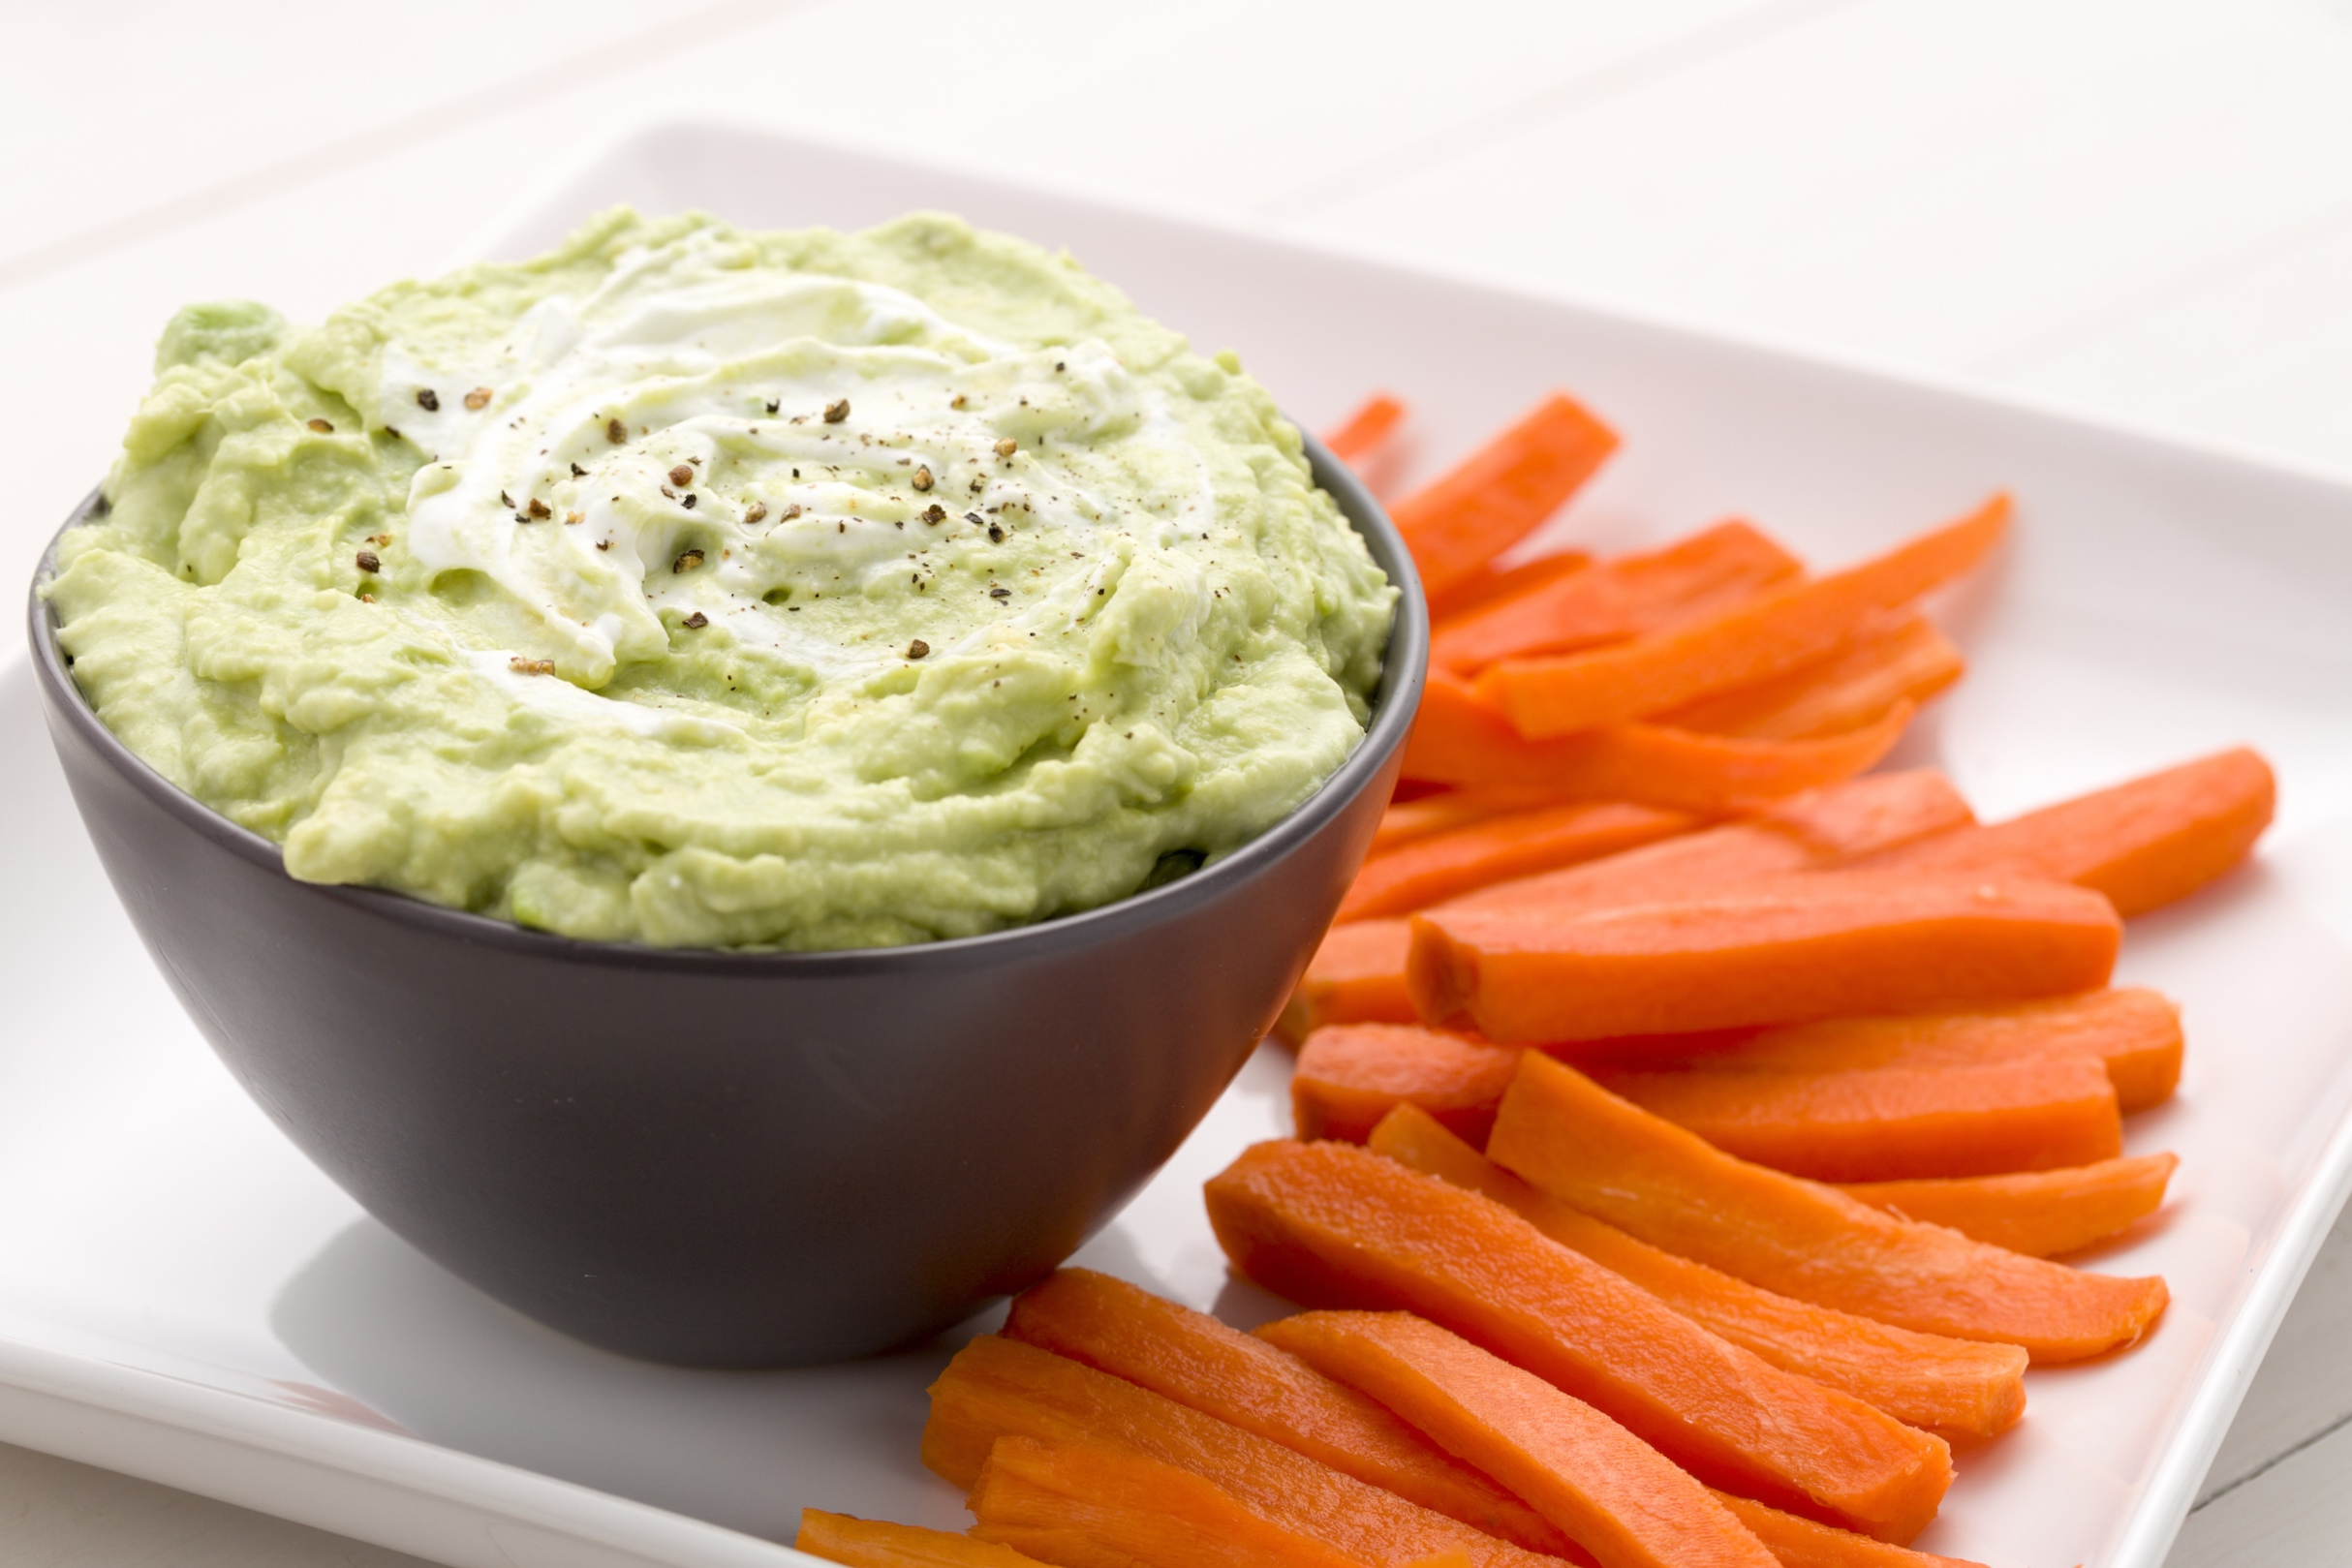 Best Creamy Avocado Dip Recipe - How to Make Creamy Avocado Dip